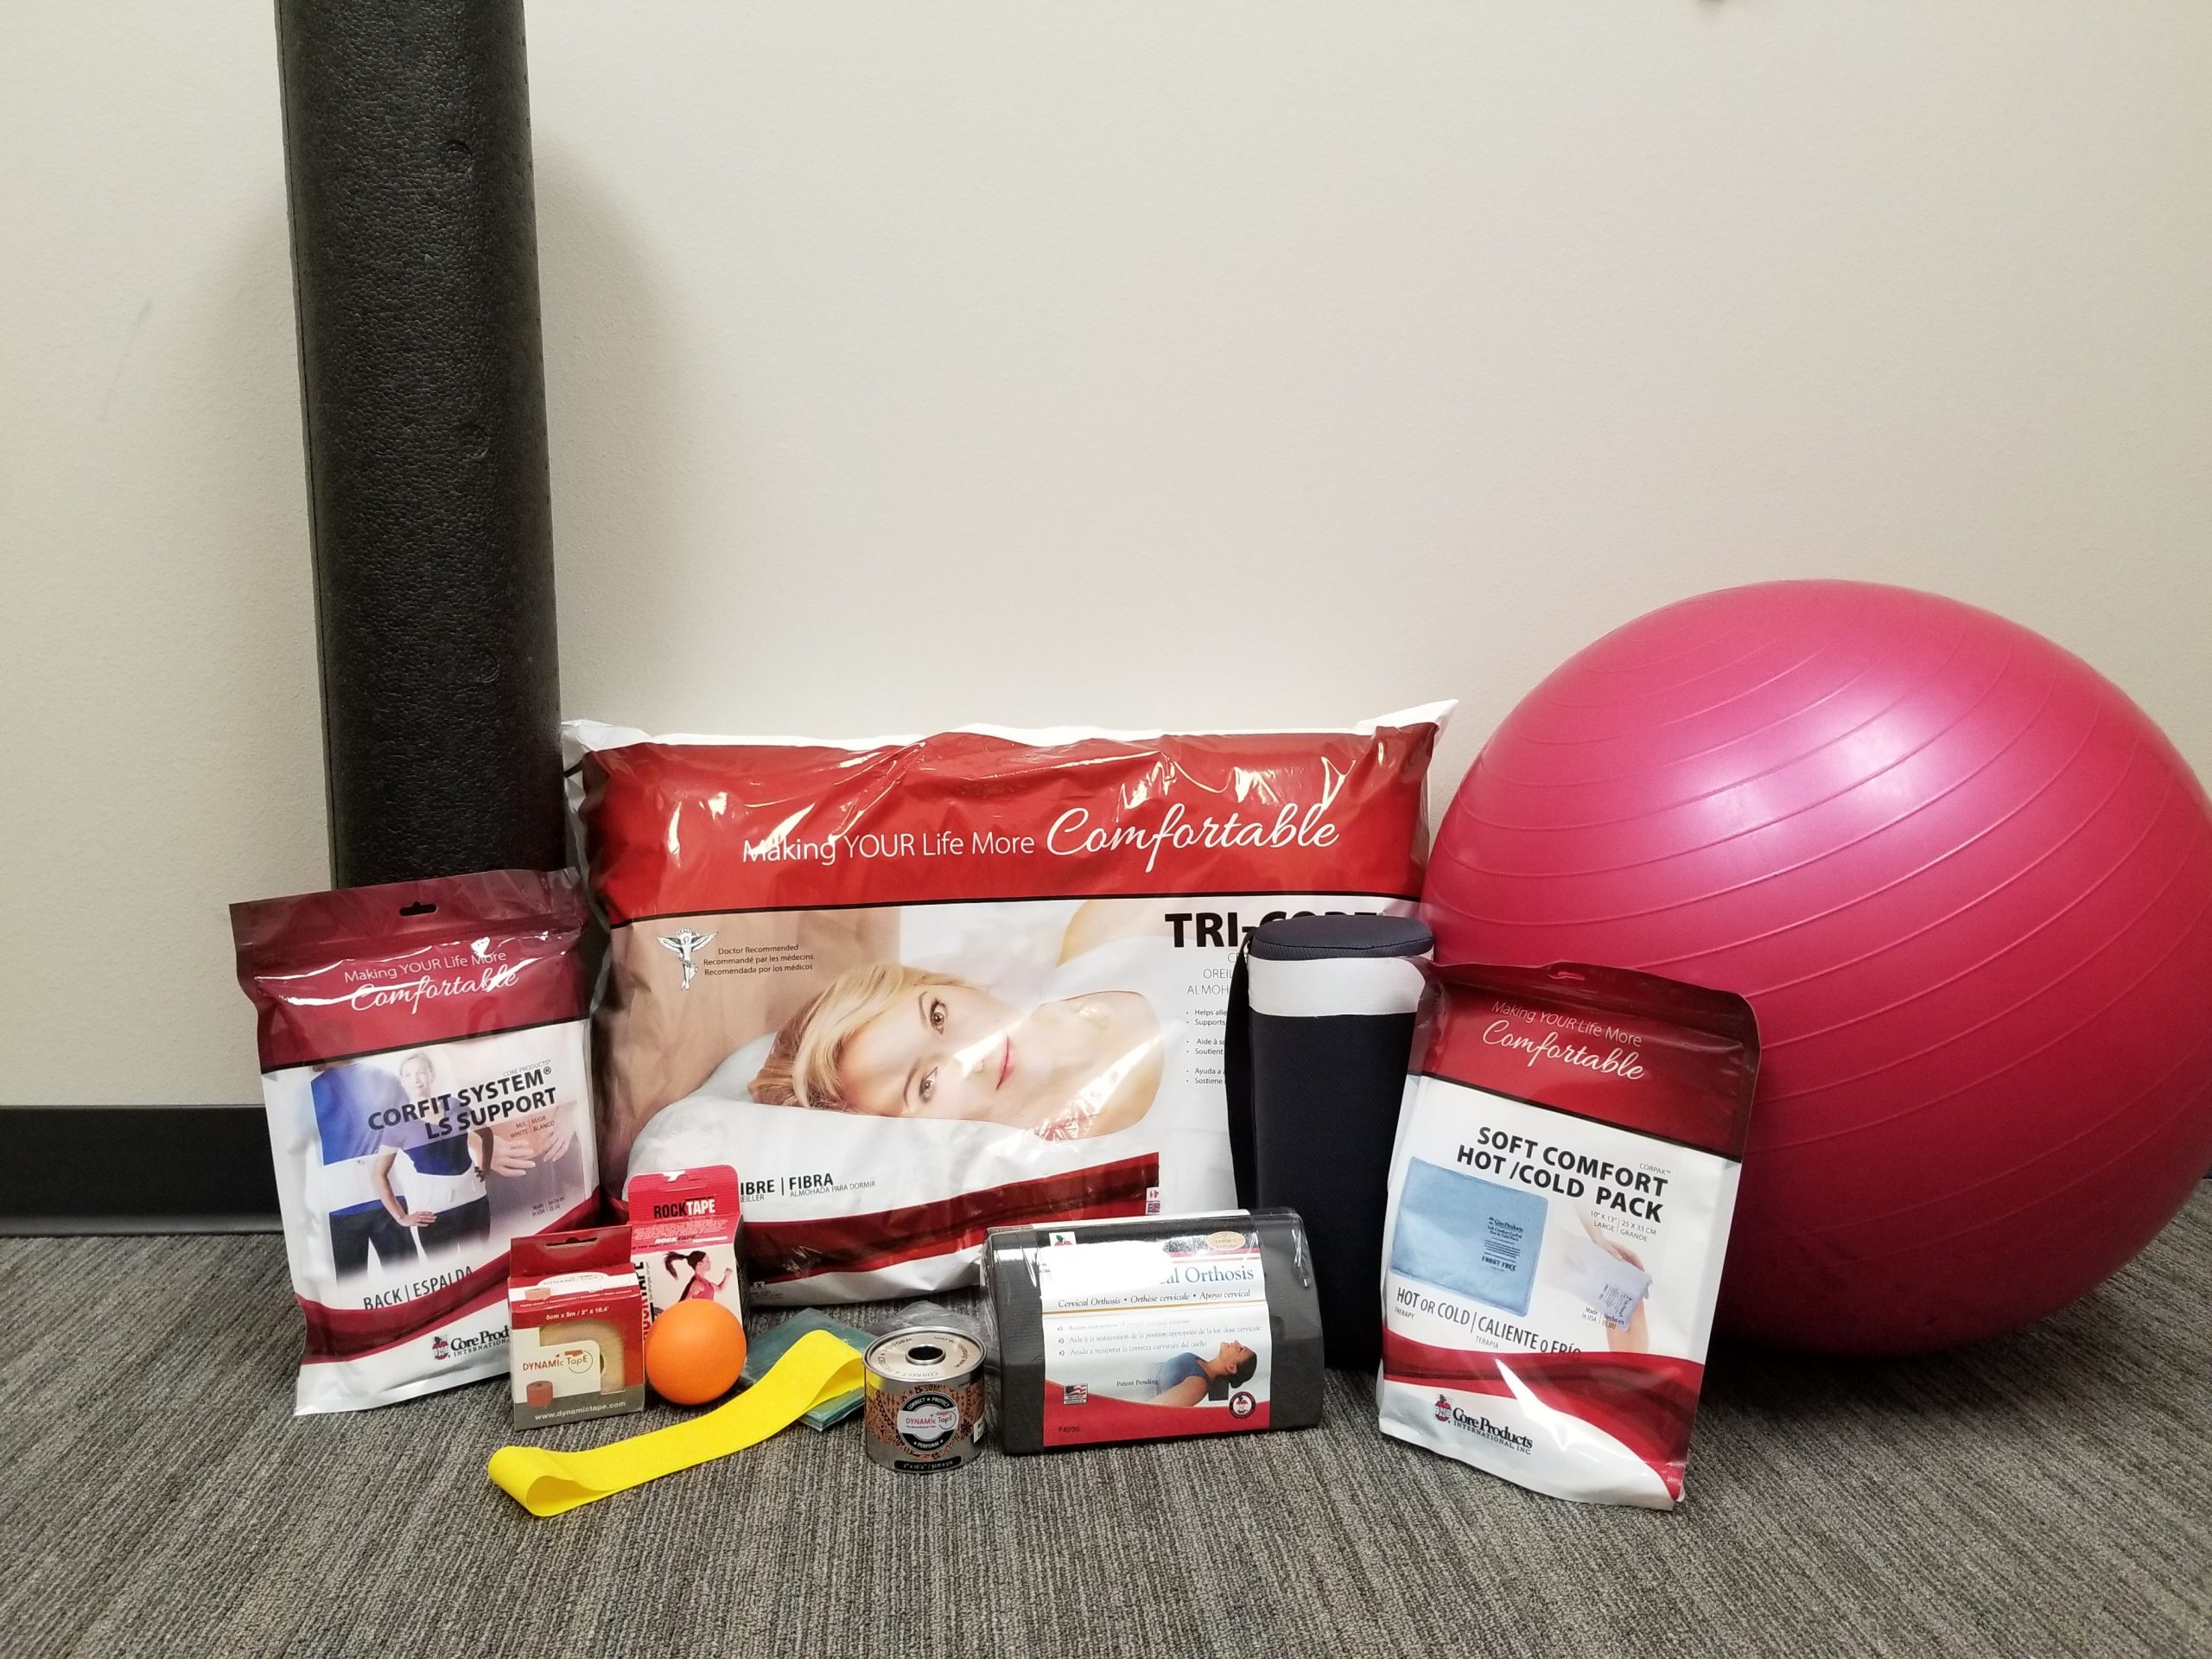 Venture has available lower back braces, pillows, hot/cold packs, exercise bands, McKenzie Rolls and taping supplies to help your posture and improve your movement.